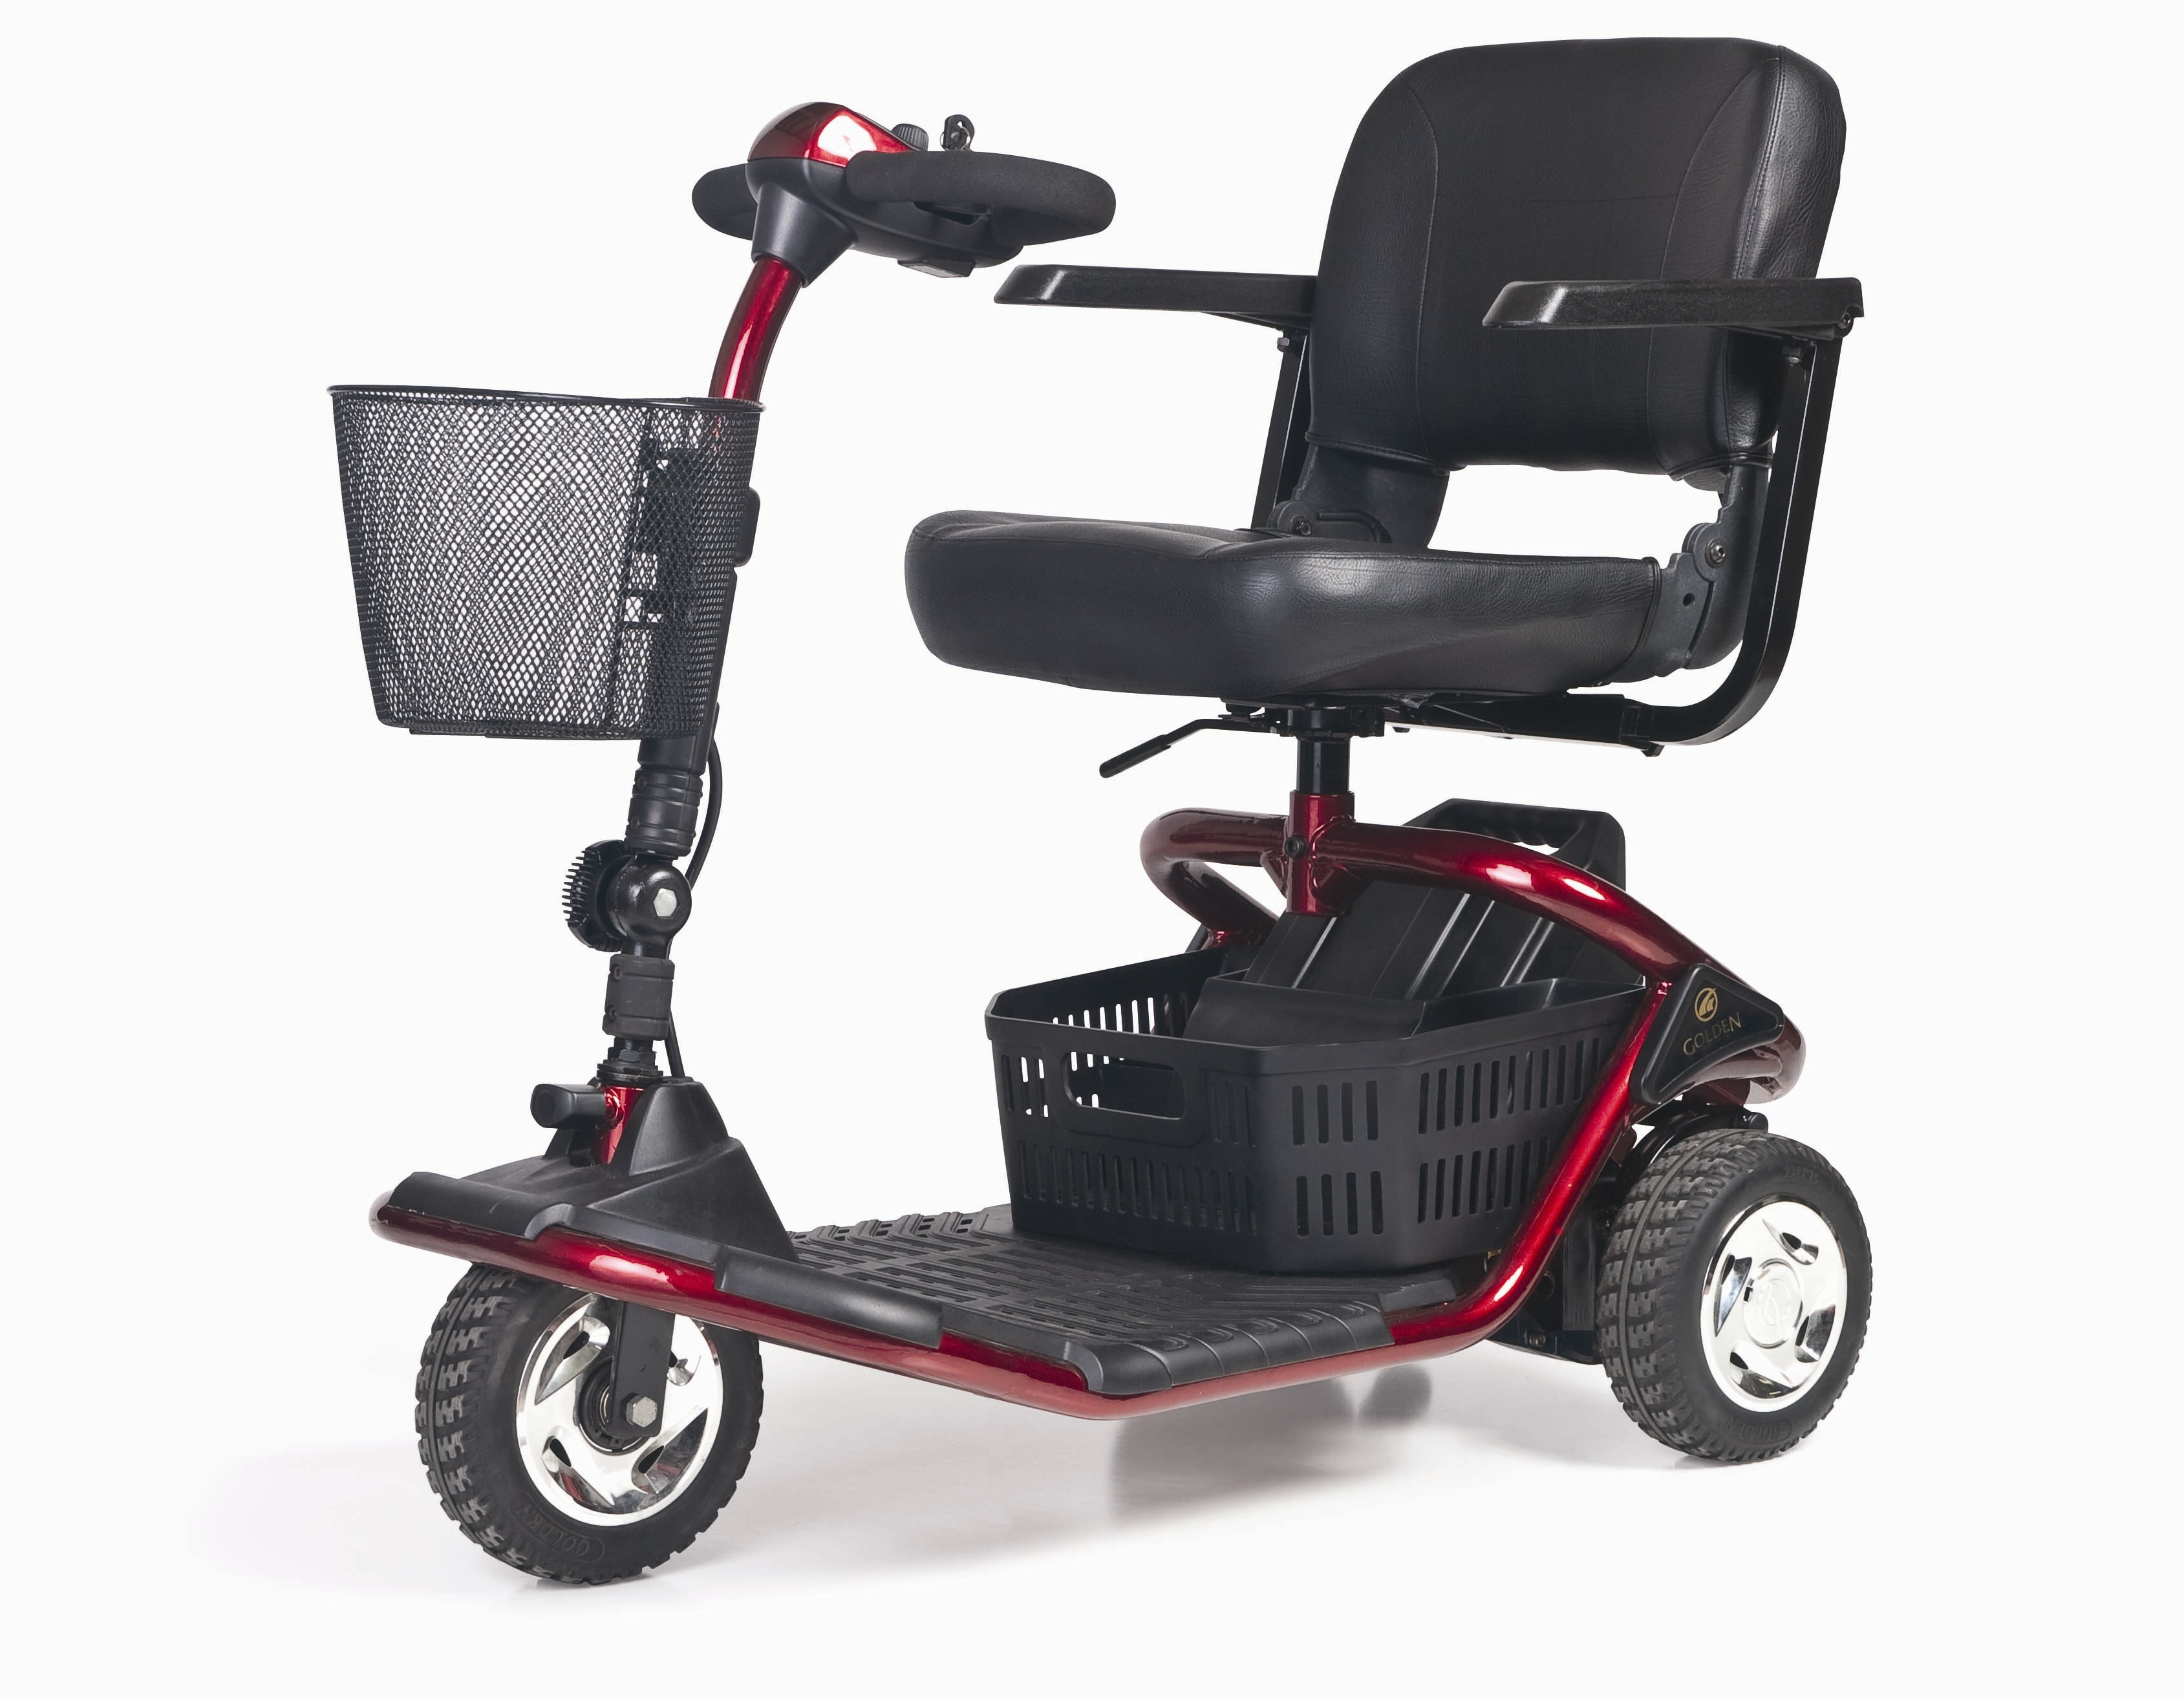 golden power chair wrought iron lounge literider gl 111 mobility scooter triton medical